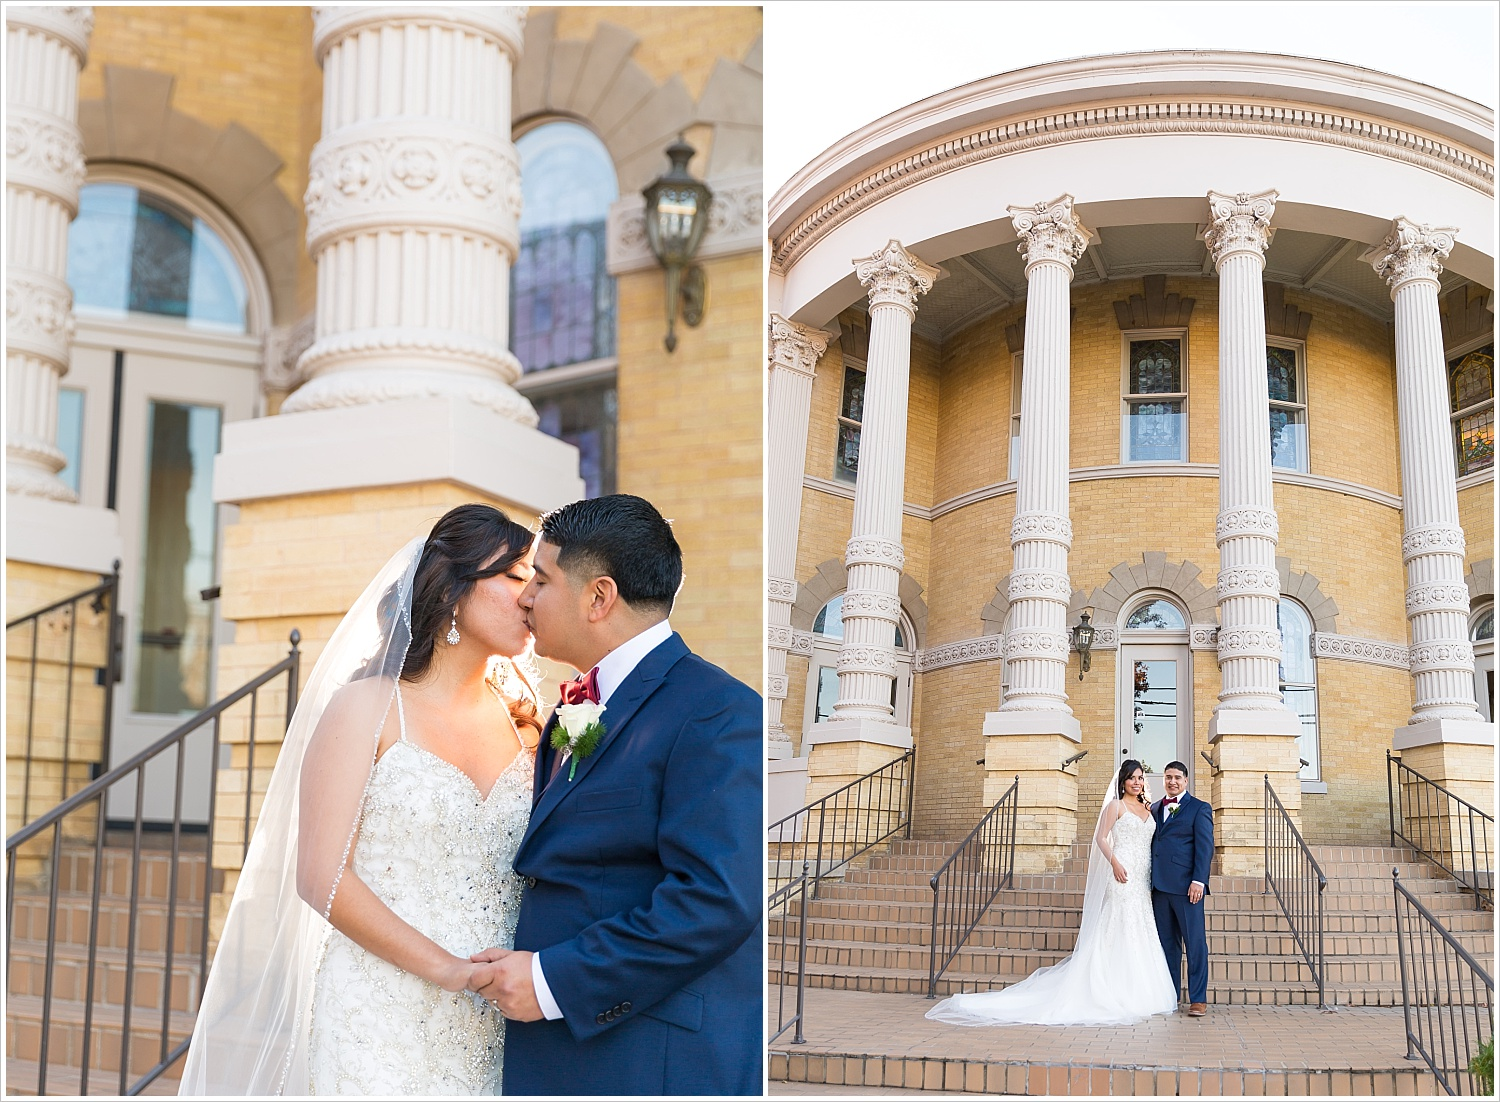 A bride and groom kiss in front of the historic First Baptist Church in downtown Waco- Jason & Melaina Photography - www.jasonandmelaina.com